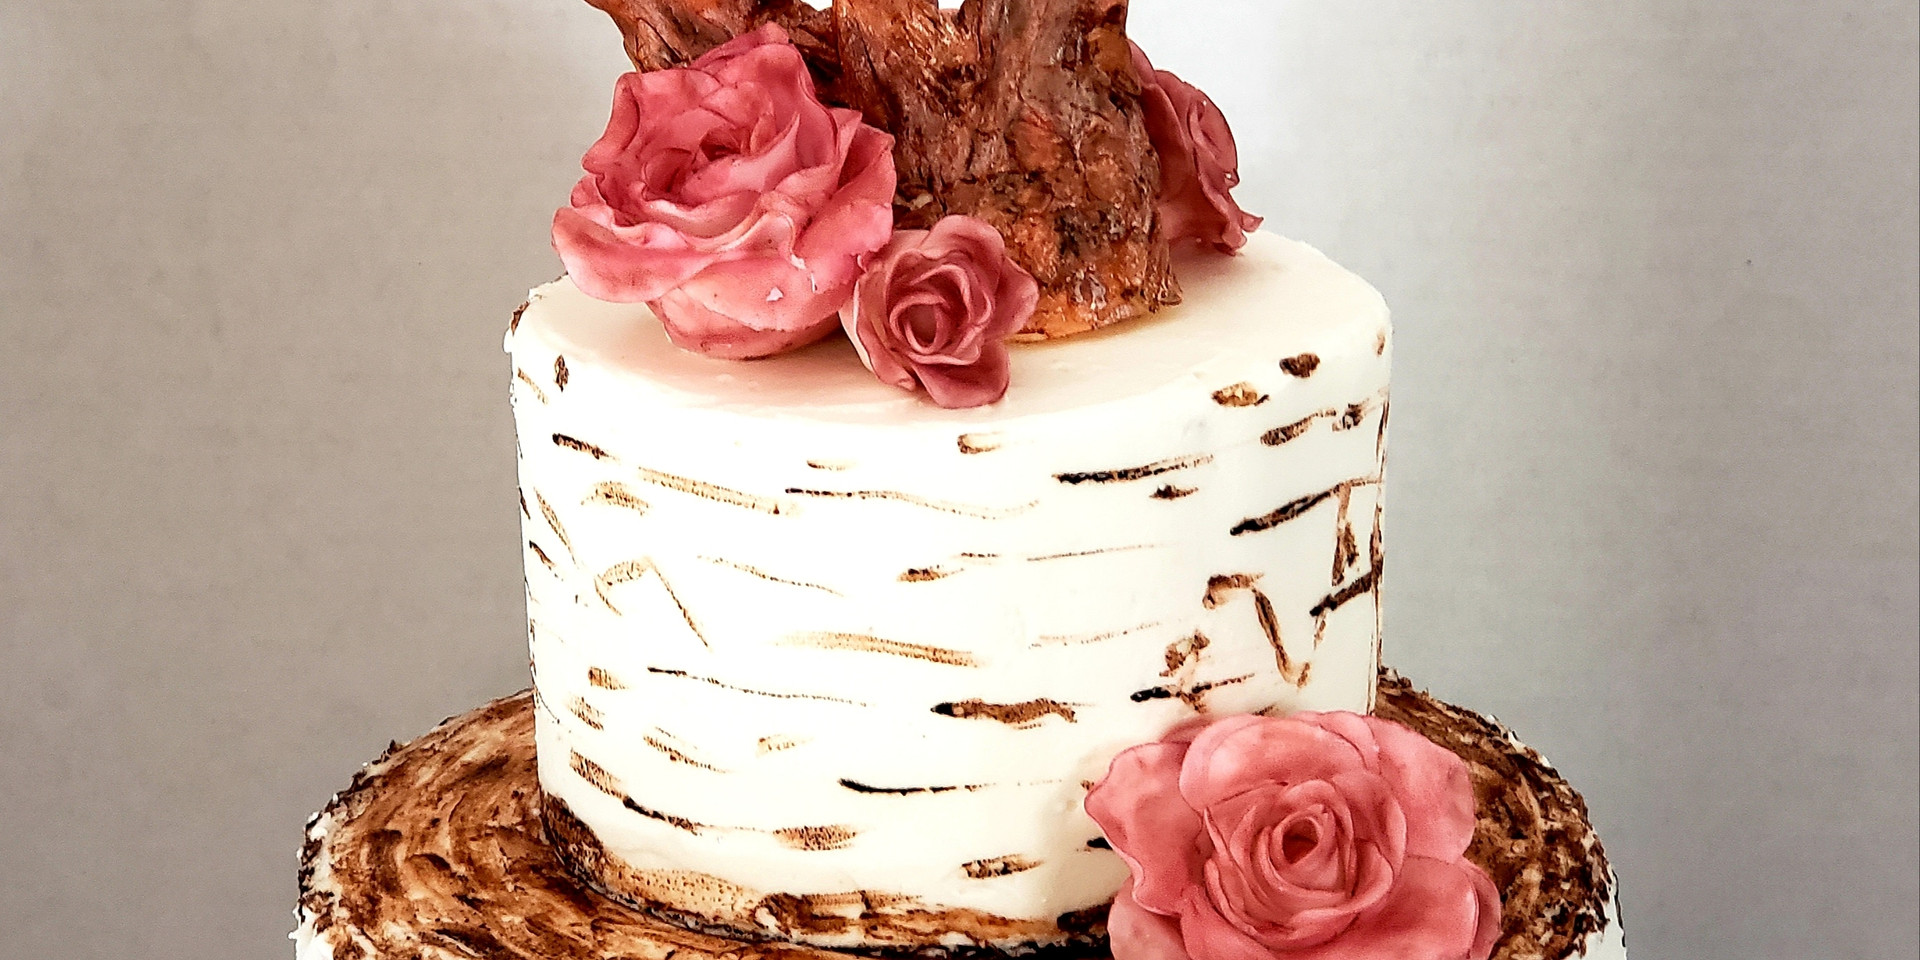 Roses and Antlers Wedding Cake